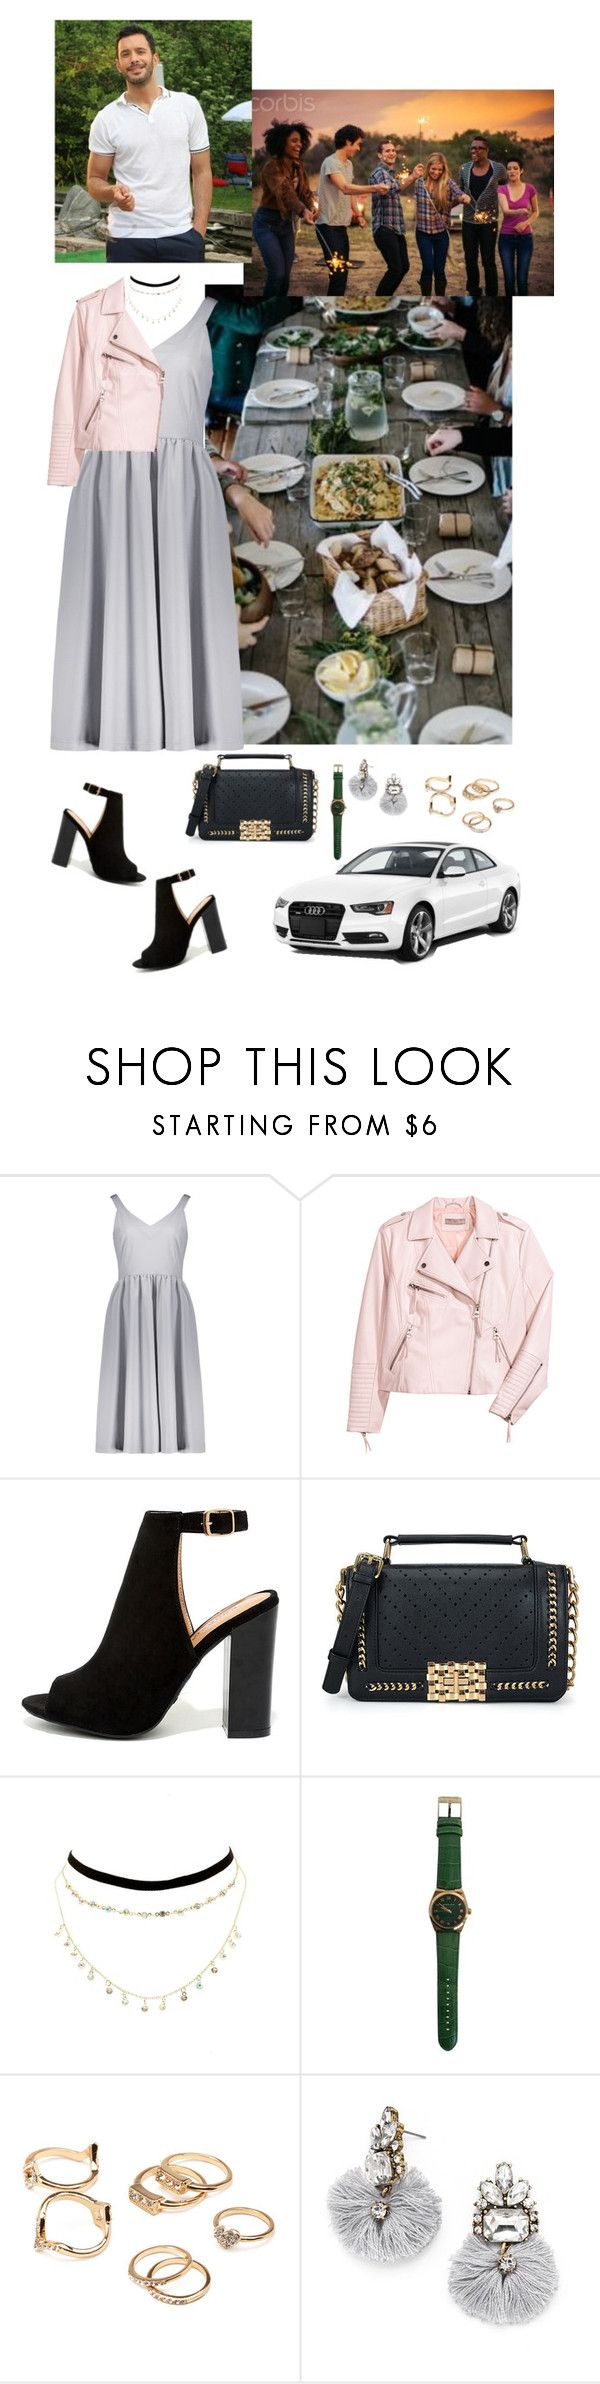 """""""Date 5 (April 11, 2014)"""" by medicicapetiens ❤ liked on Polyvore featuring H&M, LULUS, Charlotte Russe, Forever 21, BaubleBar and GET LOST"""